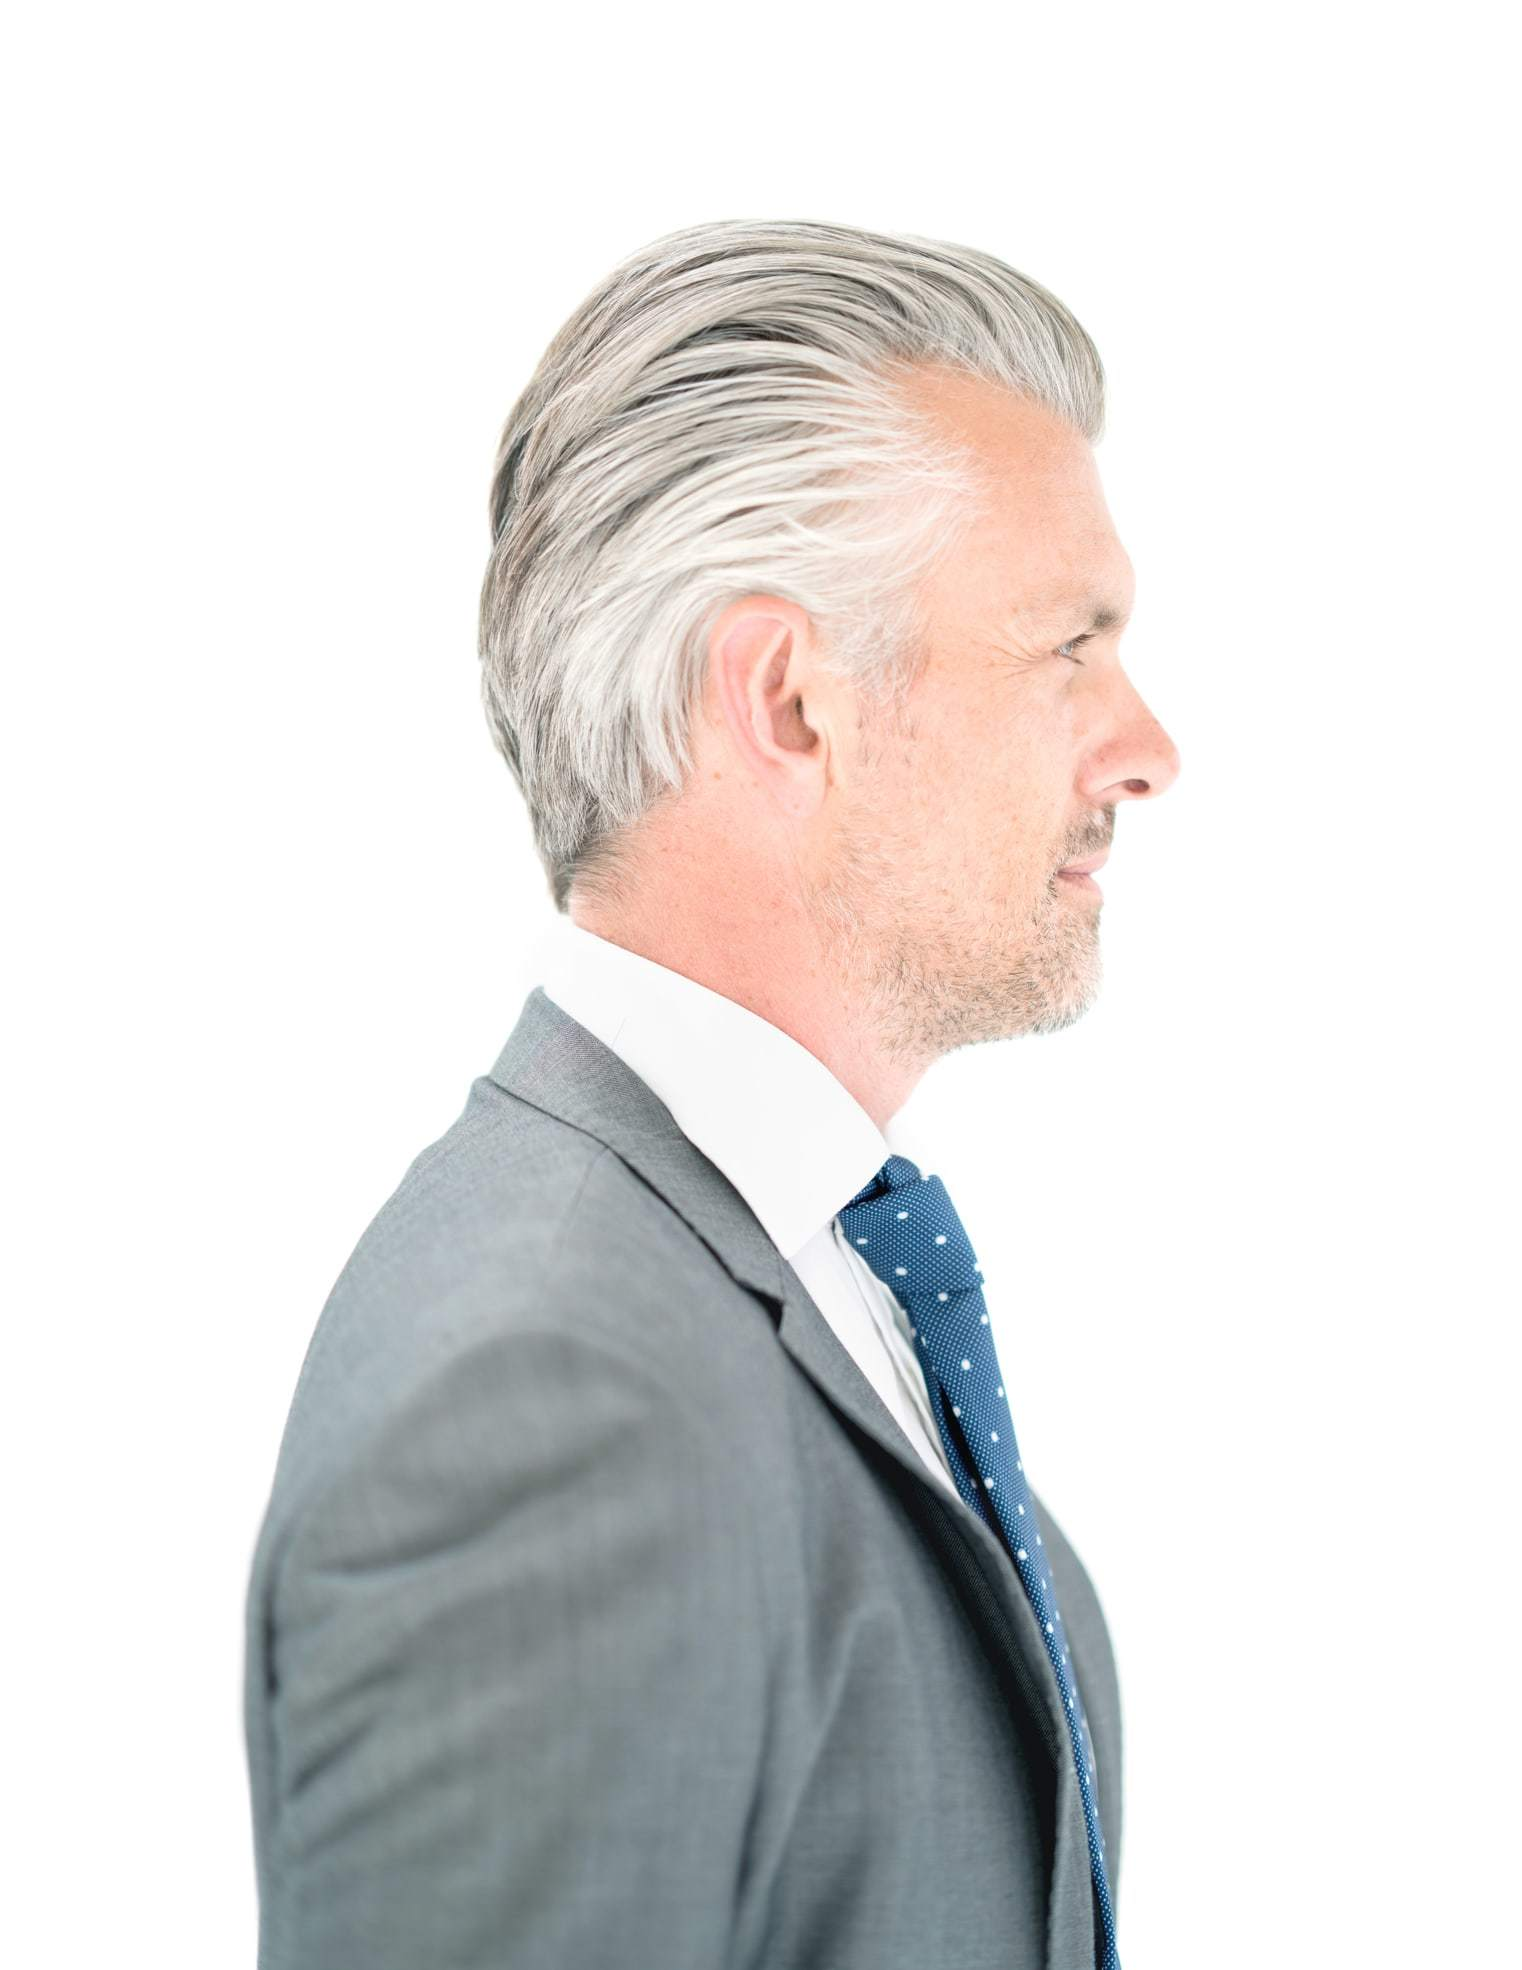 Hairstyles For Men Over 40 31 Timeless Styles To Try